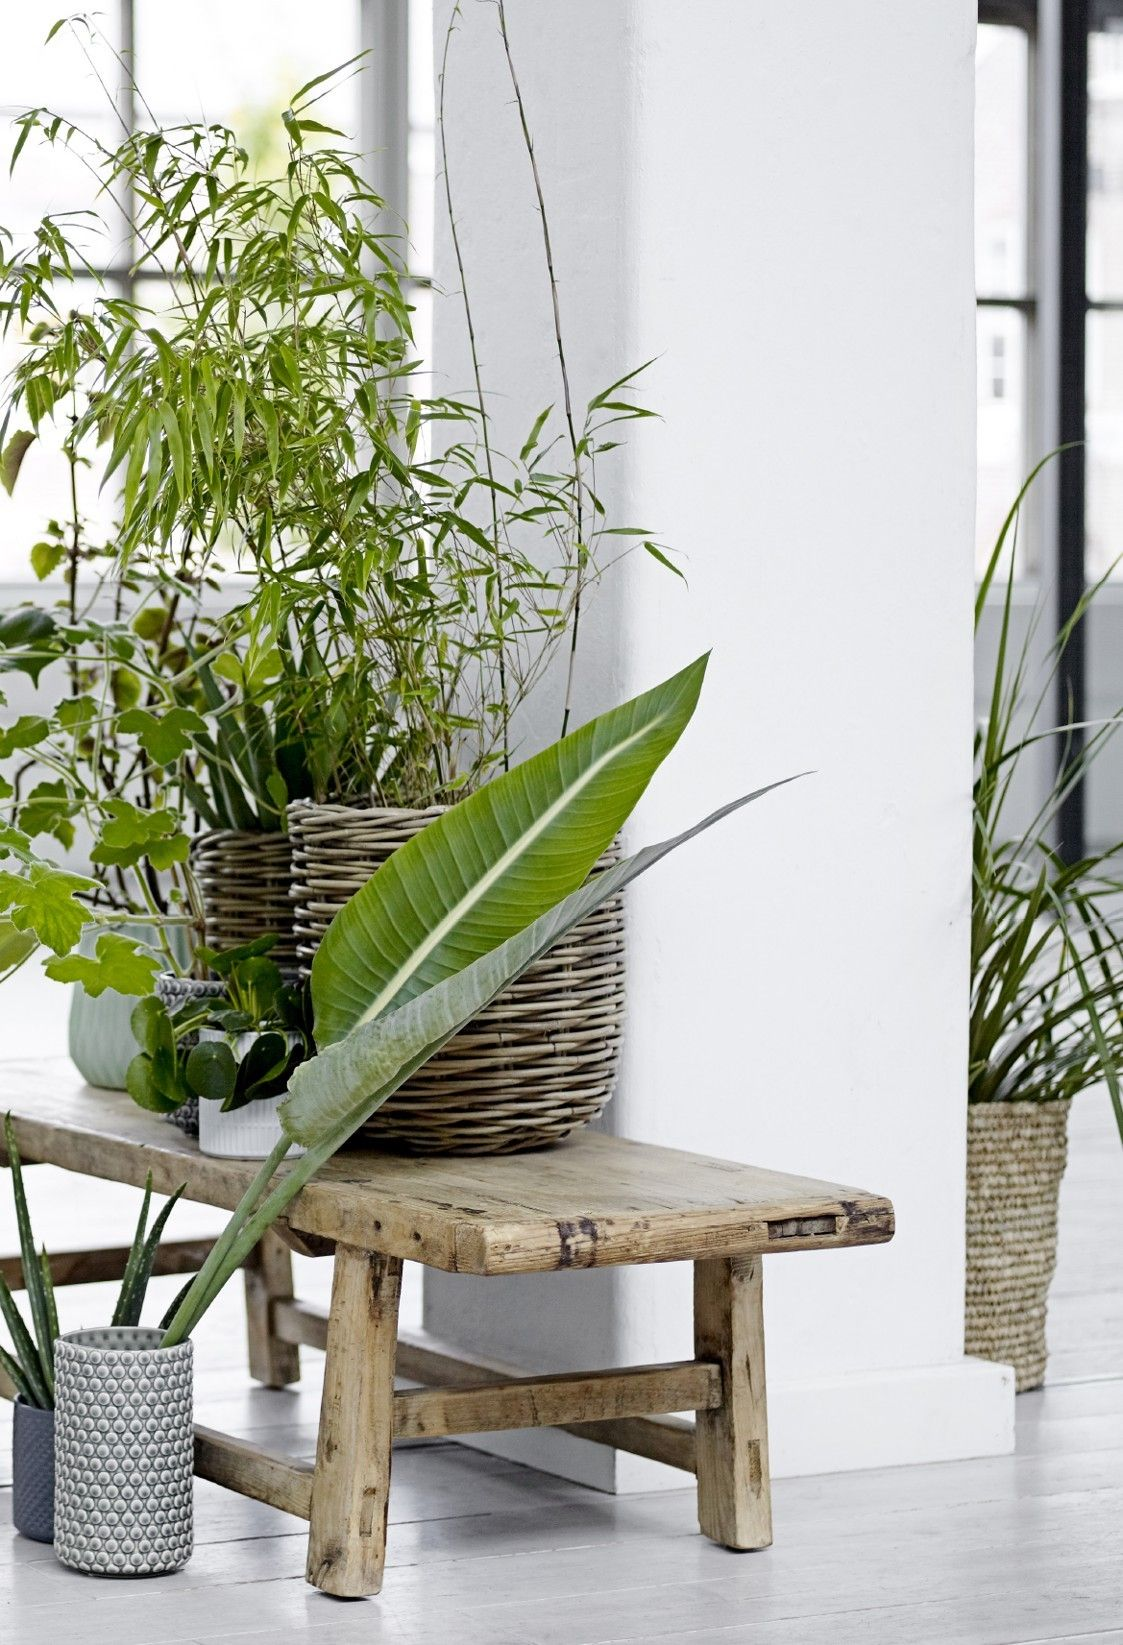 Plant Bench Indoor Breath Of Fresh Air In A Collection Of Green